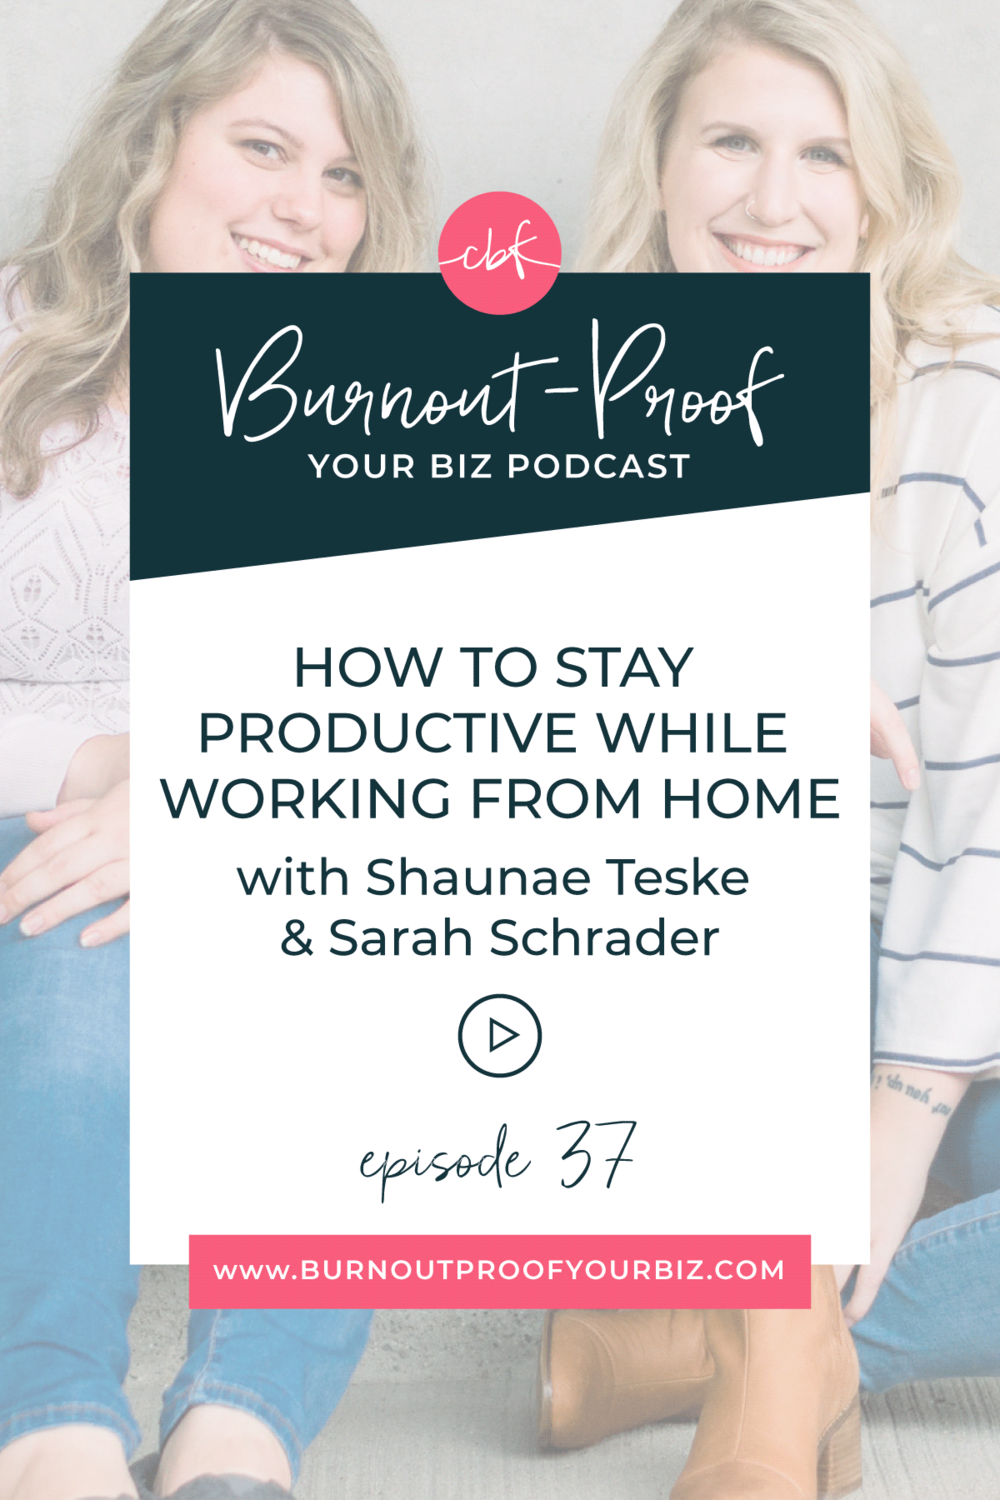 Burnout-Proof Your Biz Podcast with Chelsea B Foster | Episode 037 - How to Stay Productive While Working from Home with Shaunae Teske & Sarah Schrader | Learn how to run your biz and live your dream life on your own terms without the fear of burnout. || Work From Home | Productive Entrepreneur | Productivity | Work-Life Balance | Mental Health | Self-care | Routines | WFH Schedule